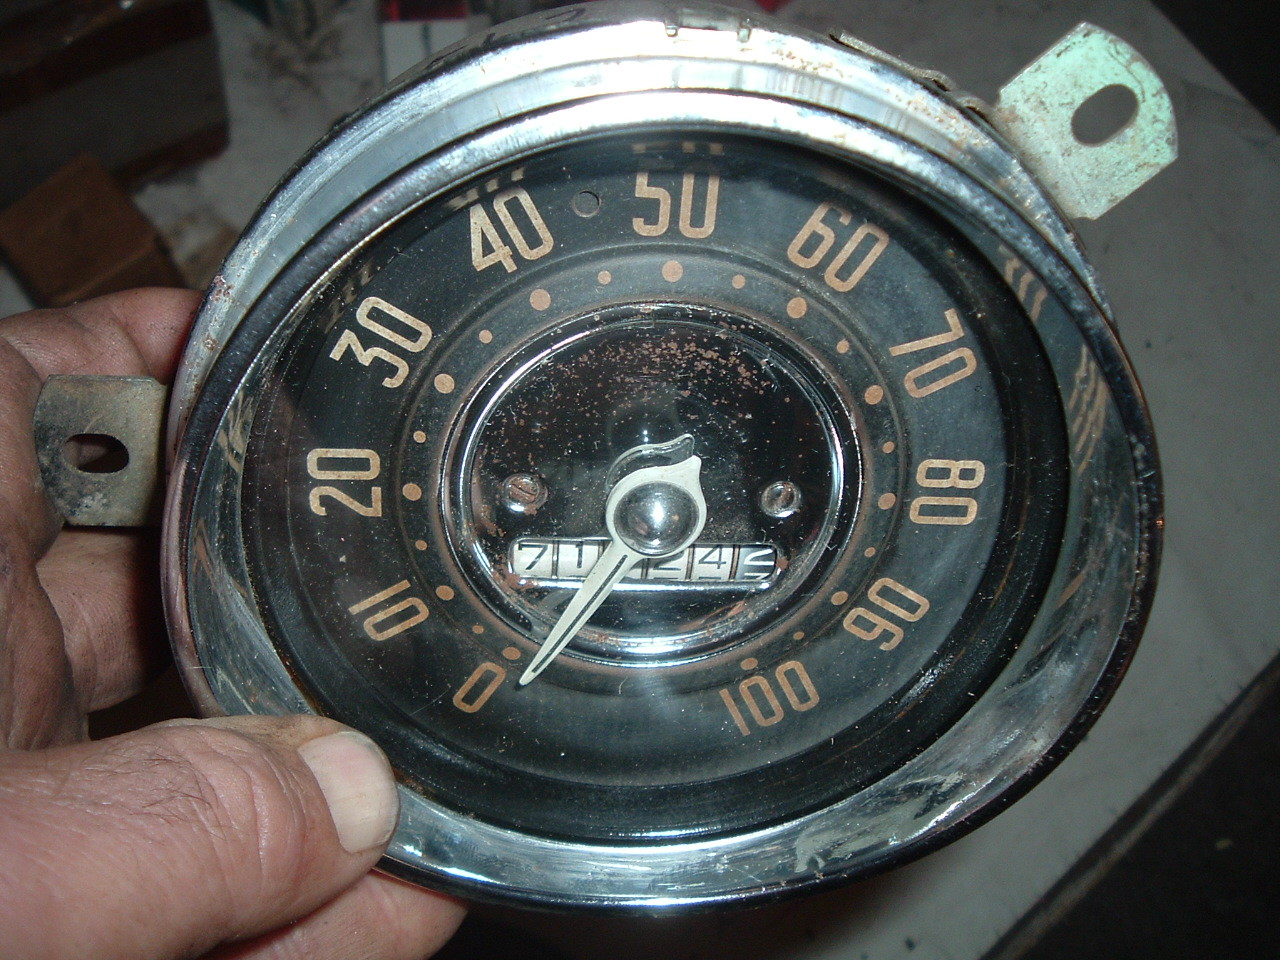 View Product1951 52 chevrolet speedometer dash cluster original (z 51-2chevgauge)